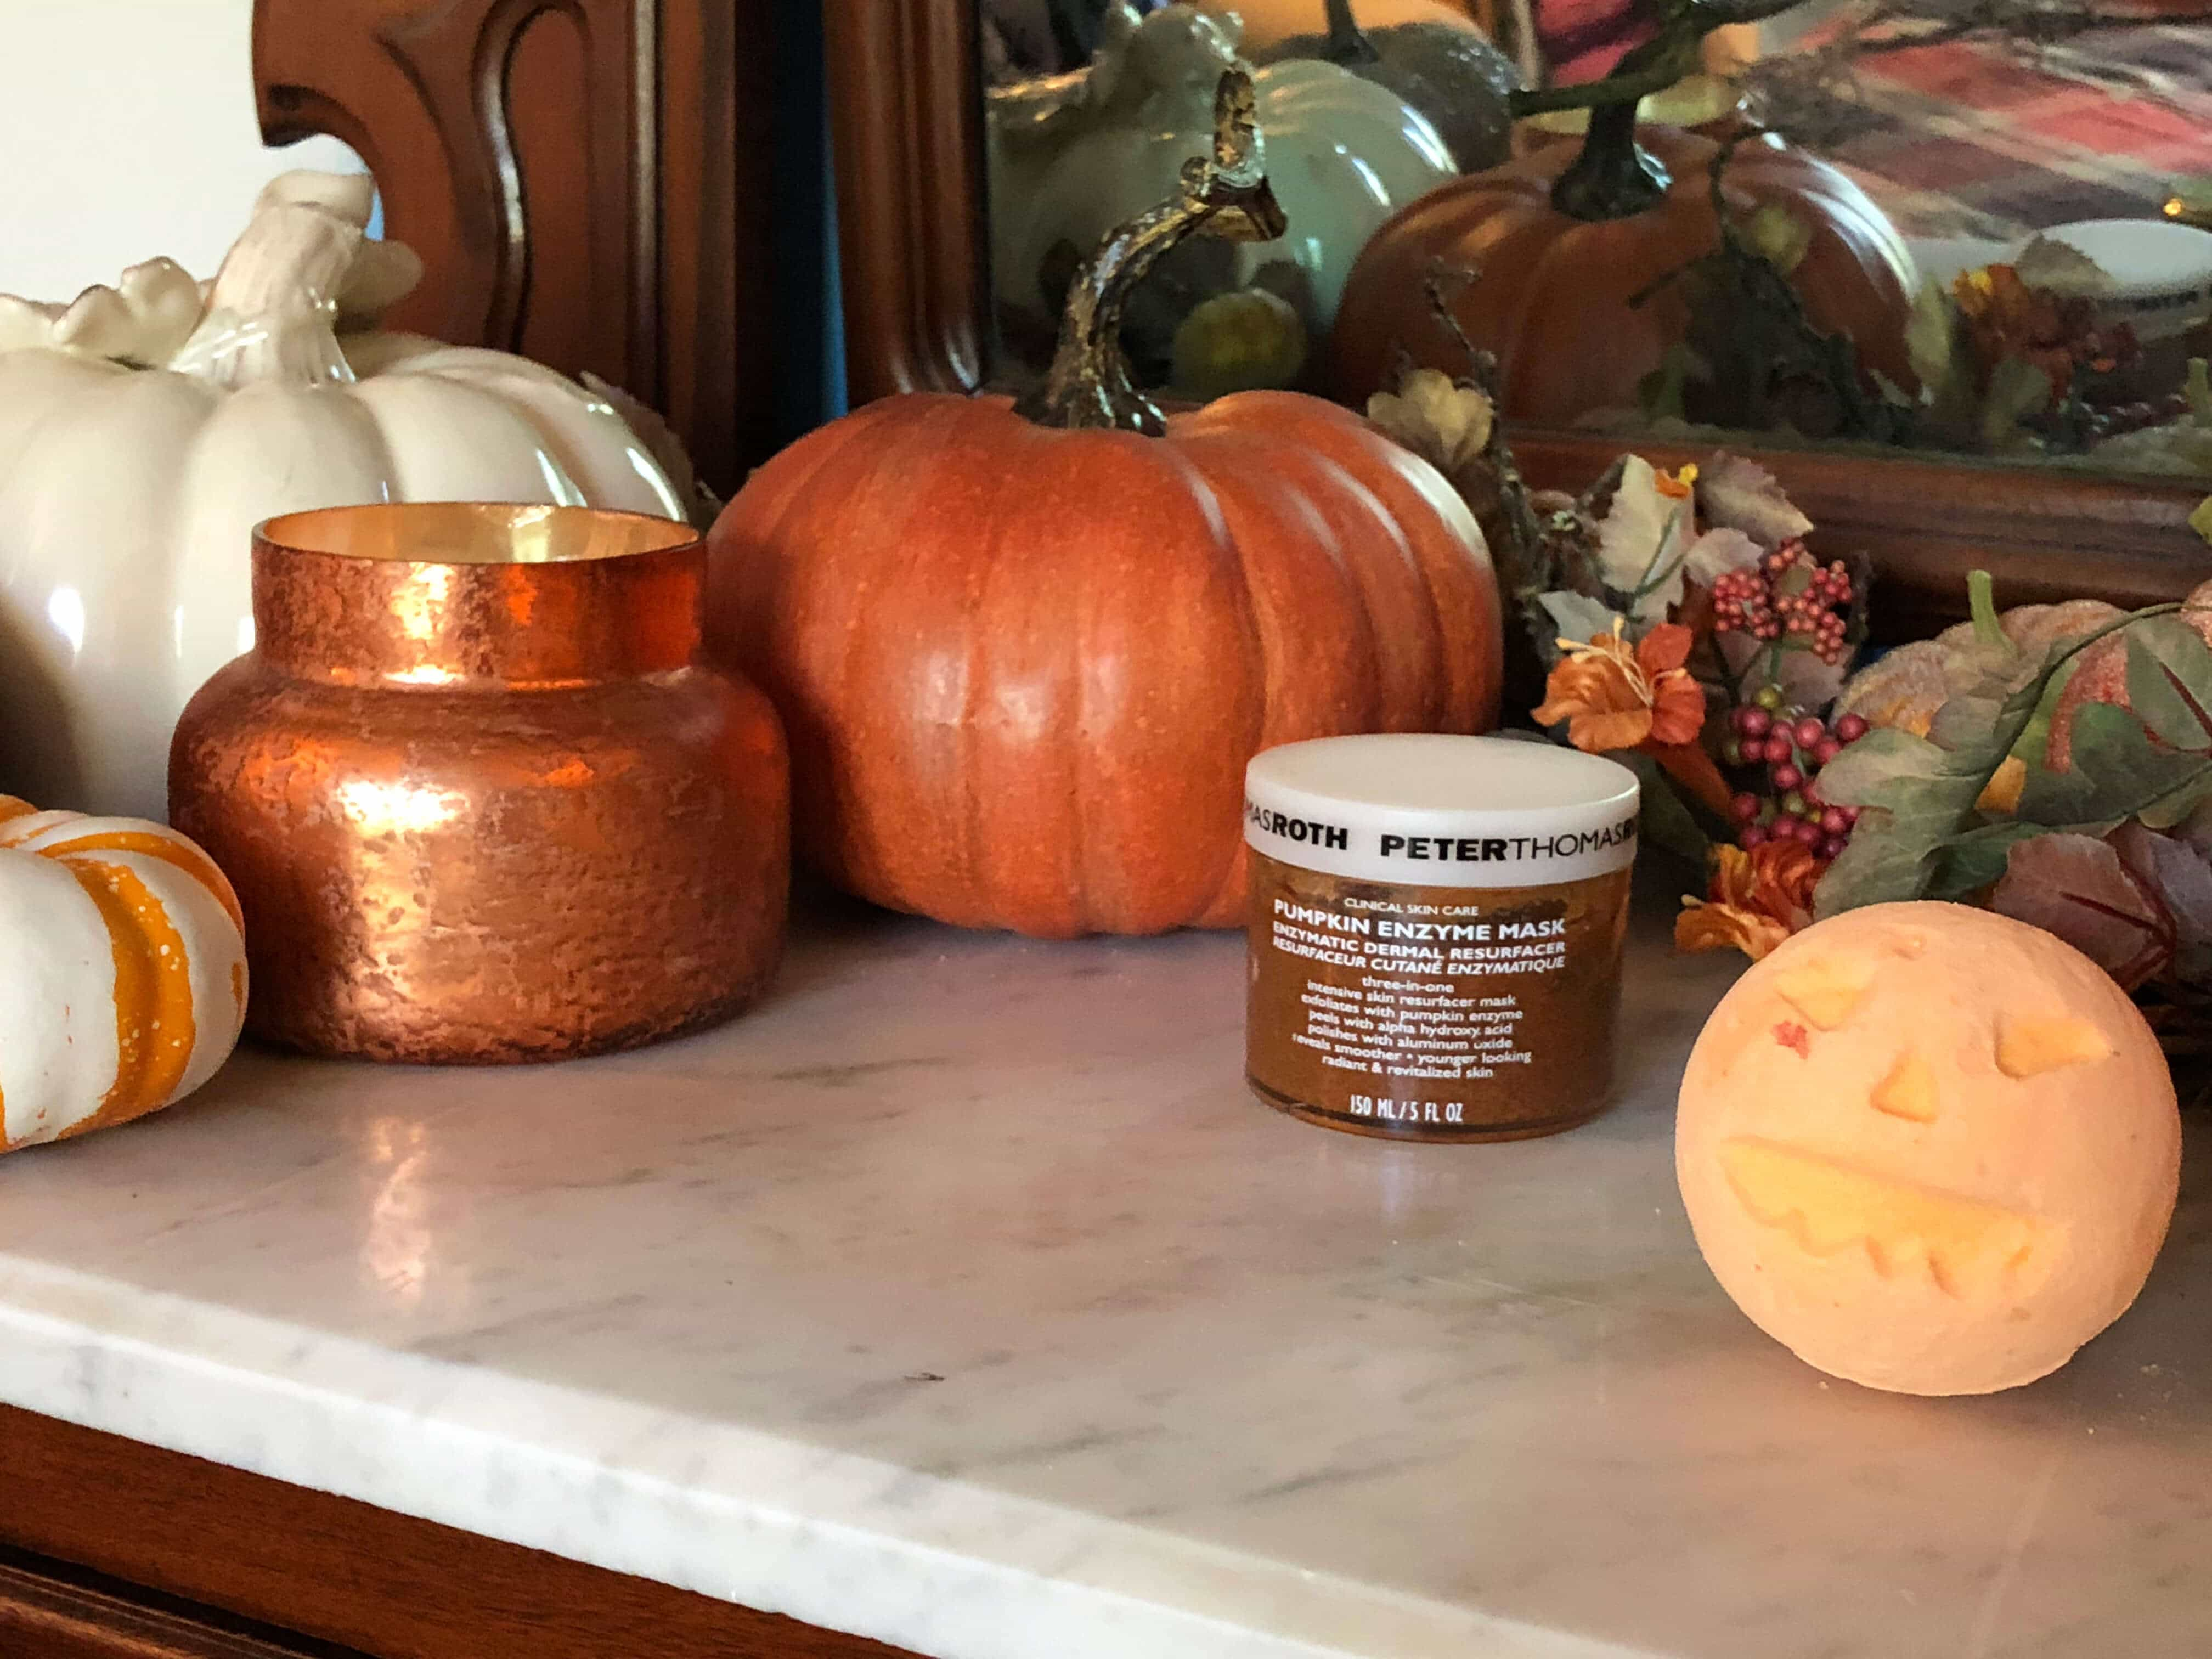 Ways To Enjoy Pumpkin WIthout The Spice #saveeandsavory #pumpkin #pumpkinspice #fall #autumn #lifestyle #lifestyleblogger #relax #homedecor #skincare